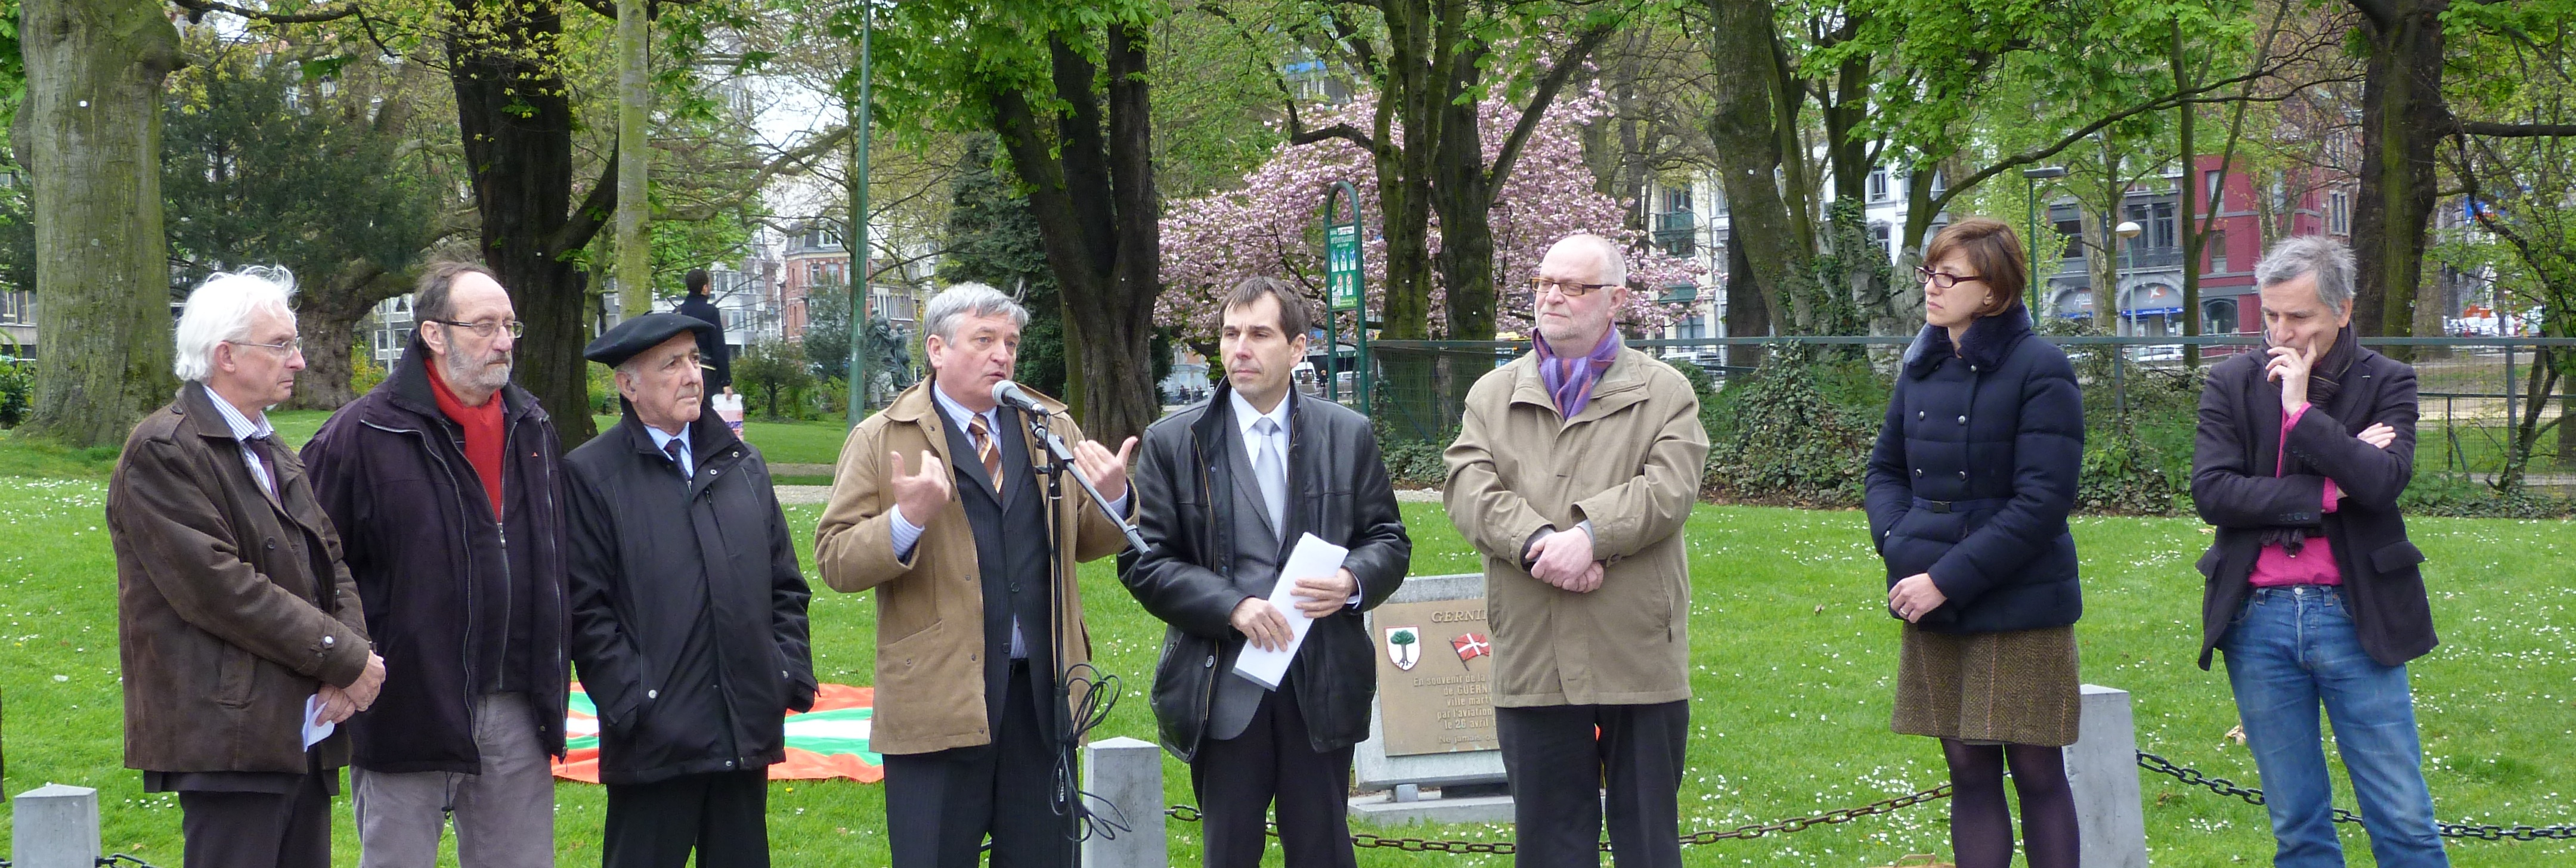 The city of Liege kicks off the ceremonies to commemorate the 75th anniversary of the Bombing of Gernika in Belgium